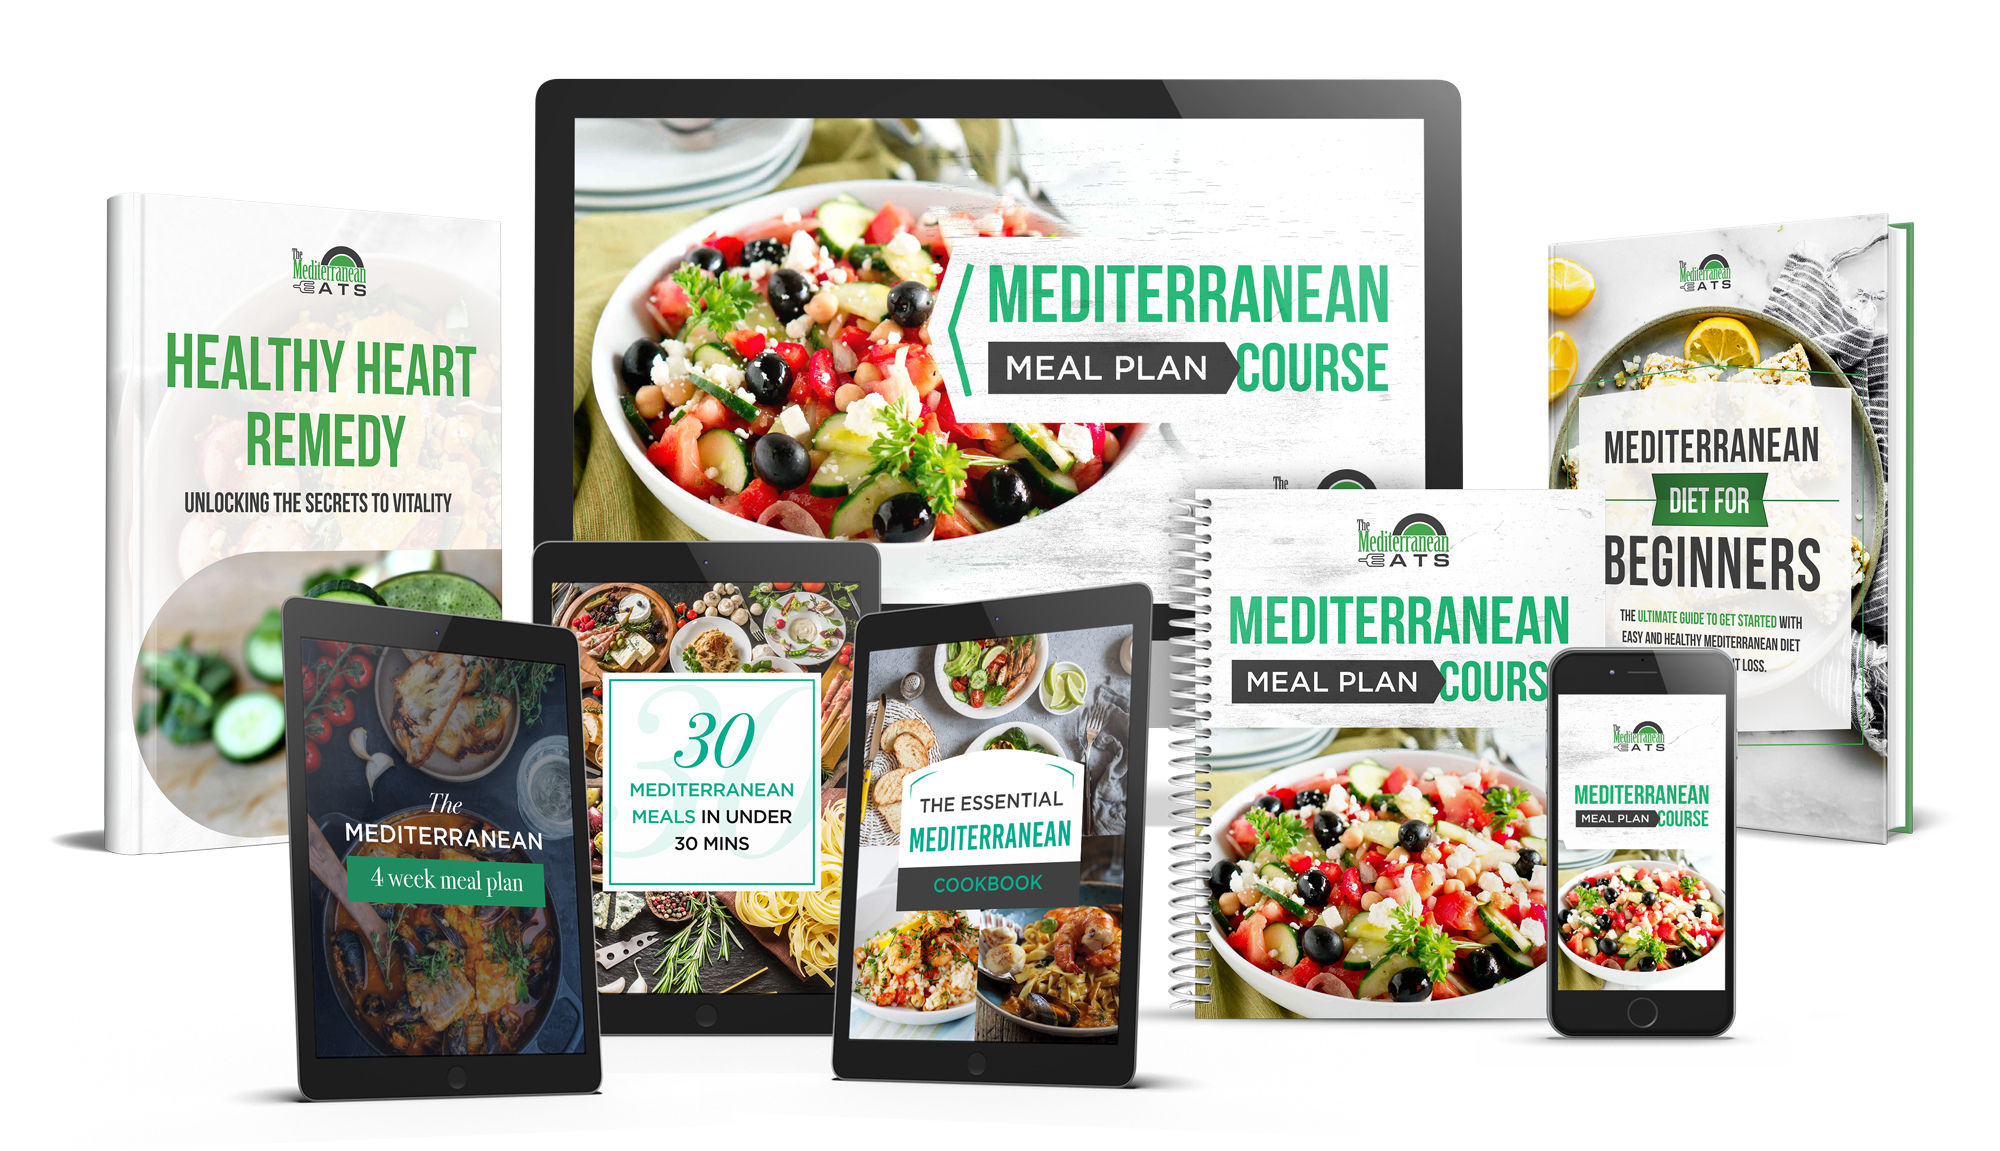 The Mediterranean Meal Plan Course